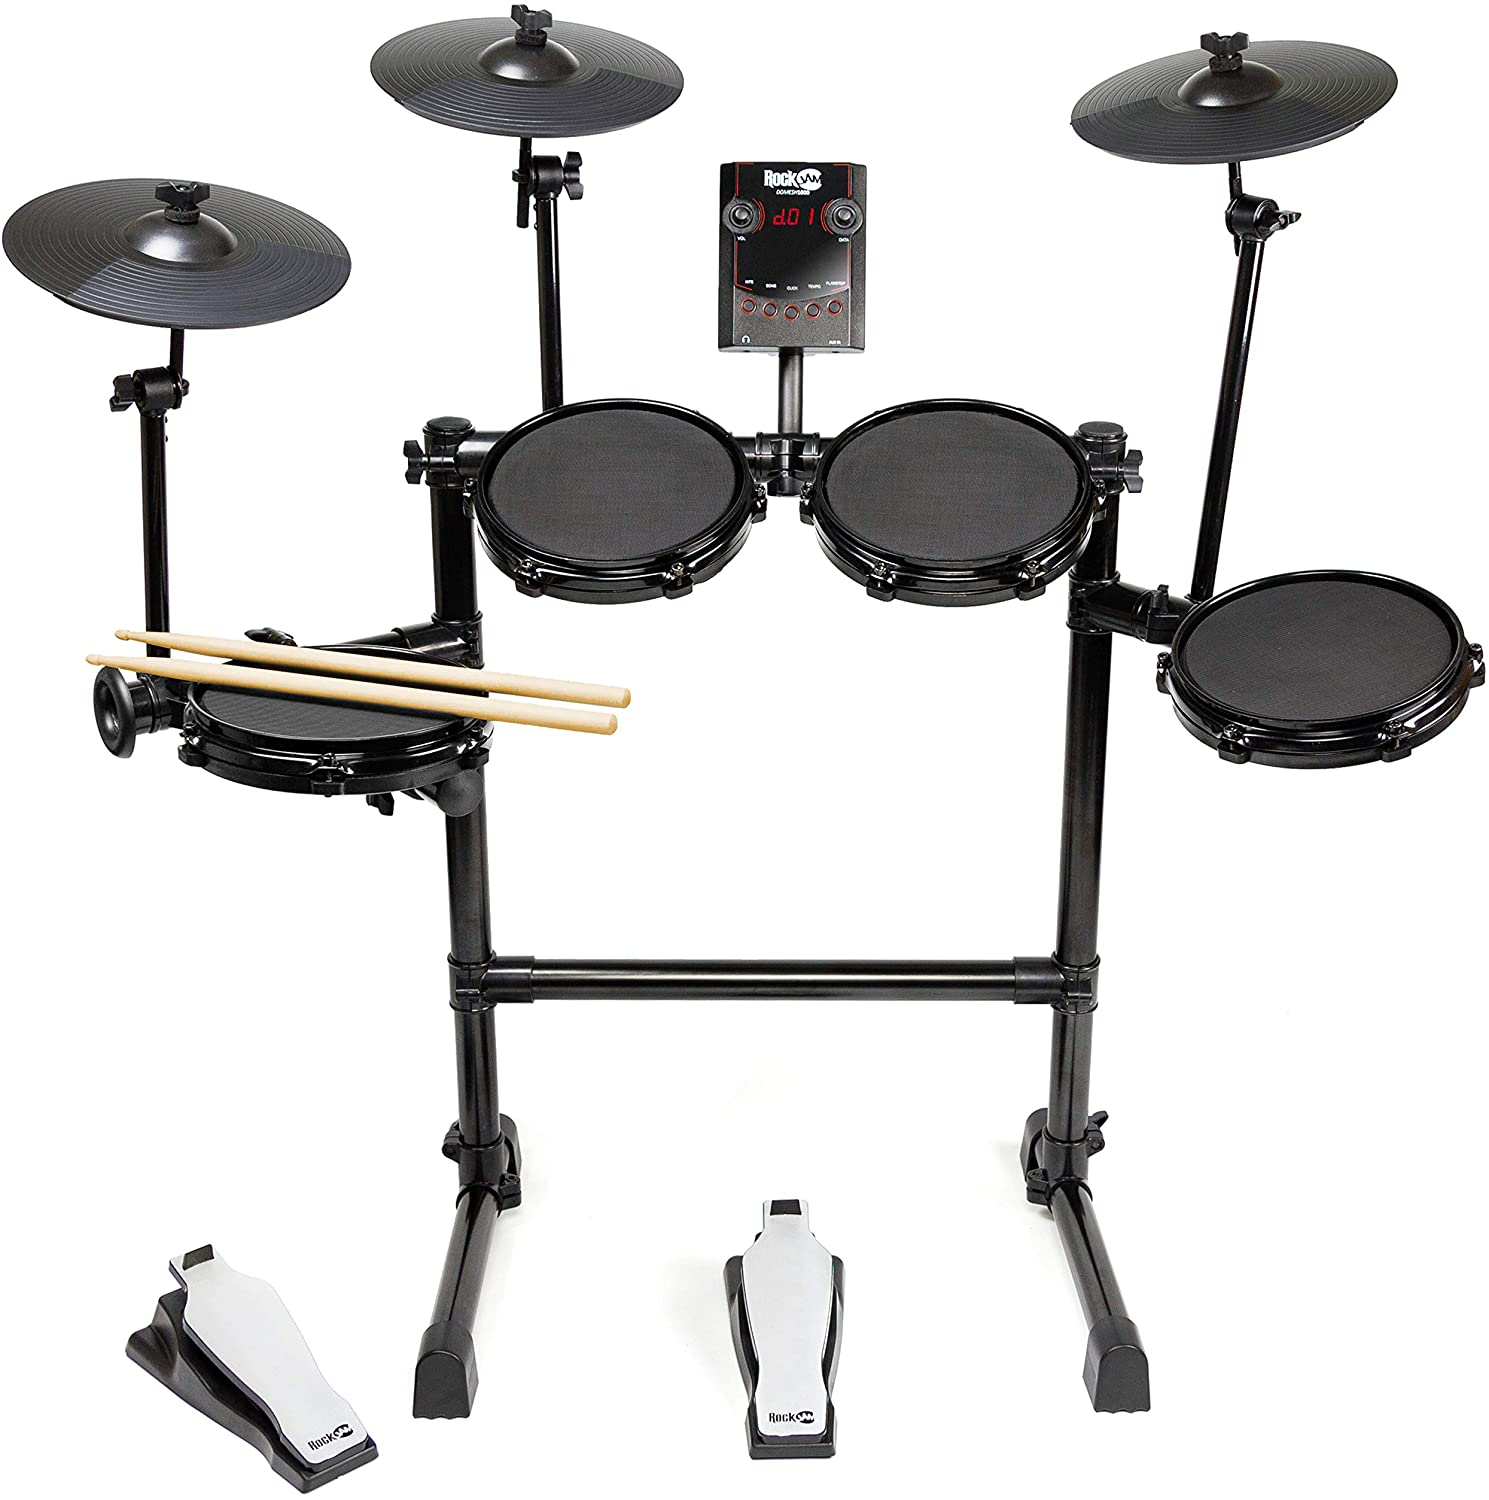 Eight Piece Electronic Drum Kit with Mesh Head Easy Assemble Rack and Drum Module including 30 Kits Renewed RockJam Mesh Head Kit USB and Midi connectivity